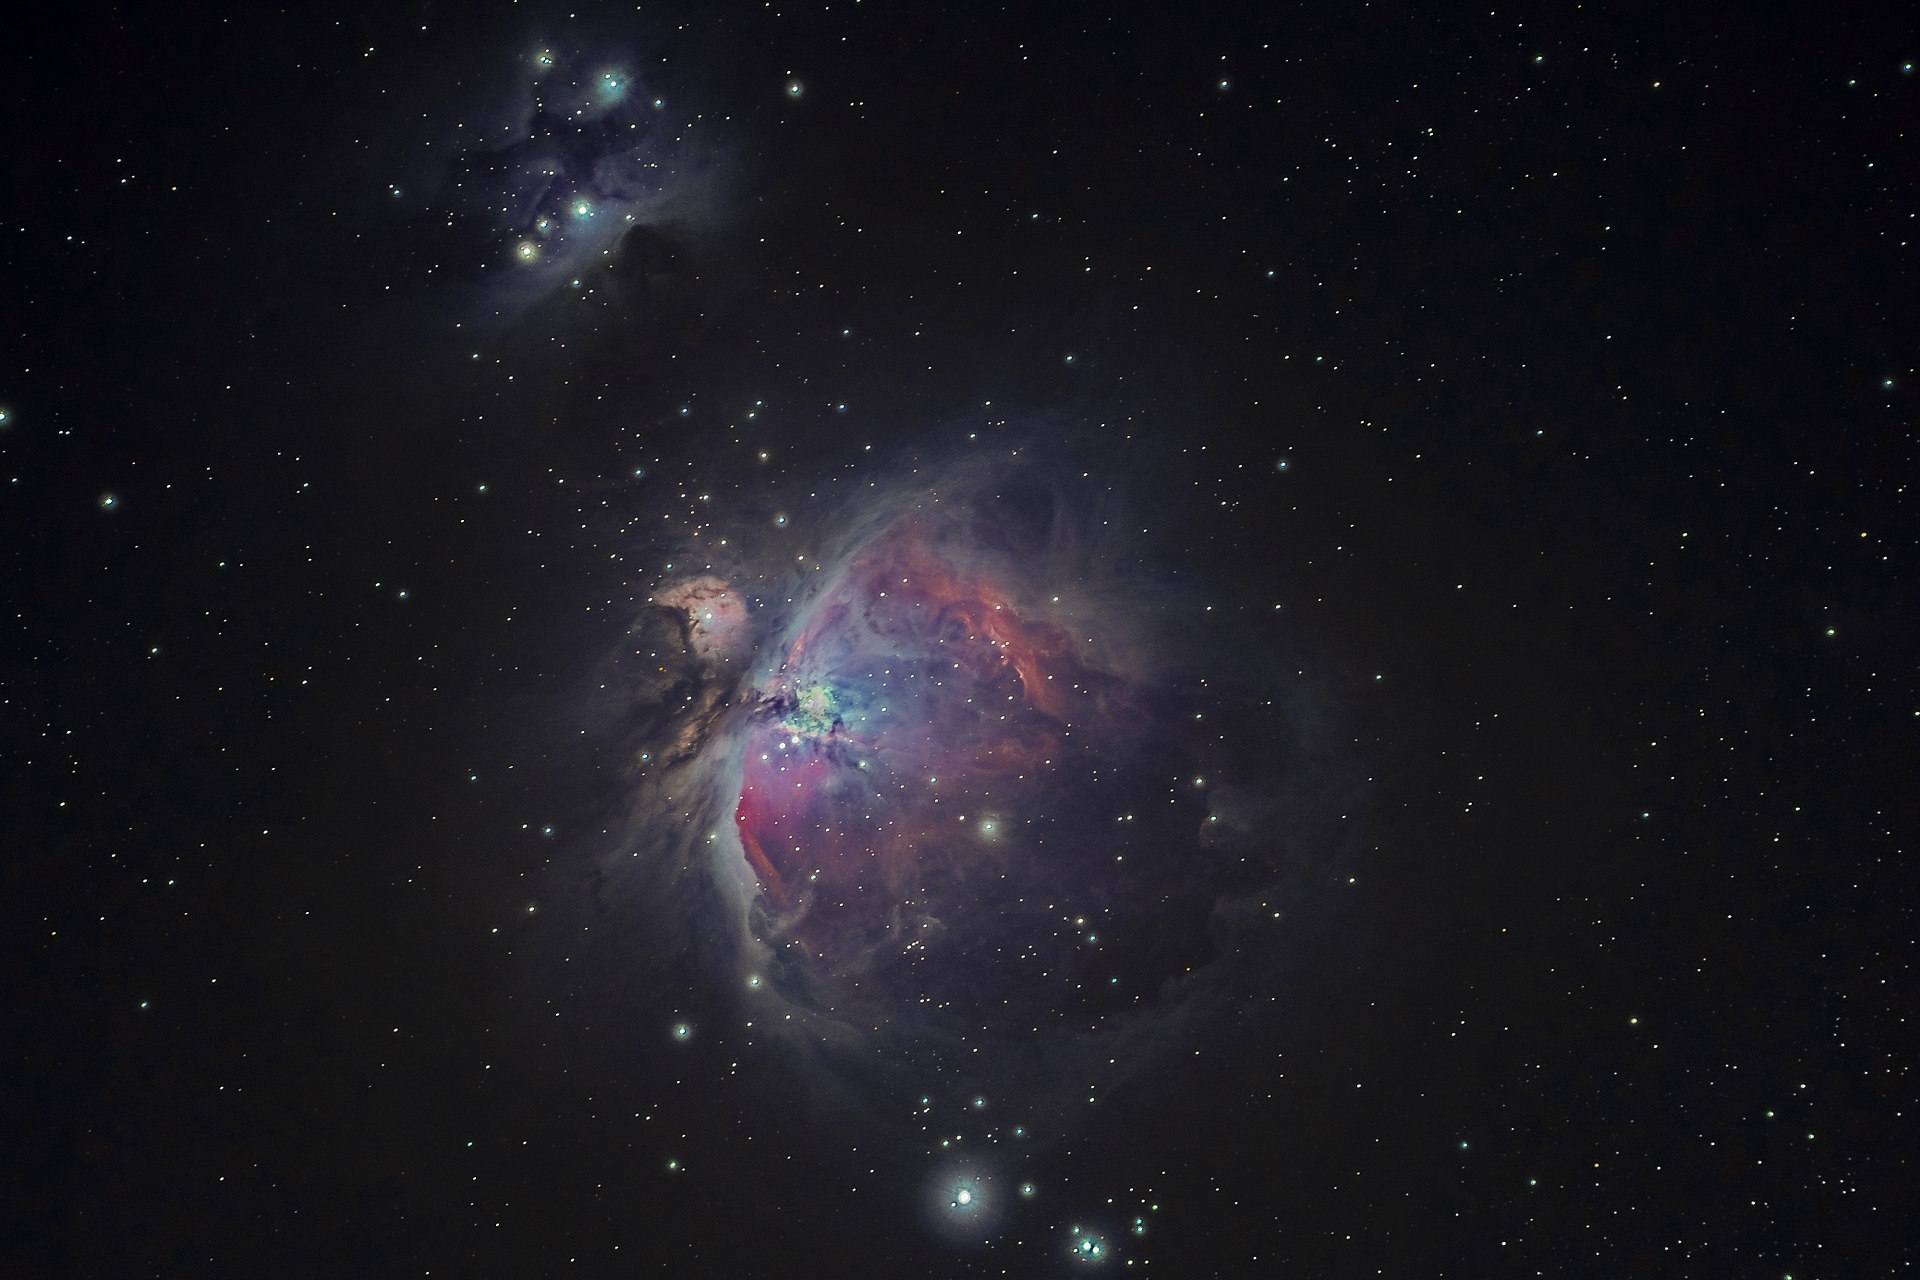 Amateur image of the Orion Nebula taken with a Sony Alpha a6300 camera, by Bryan Goff.